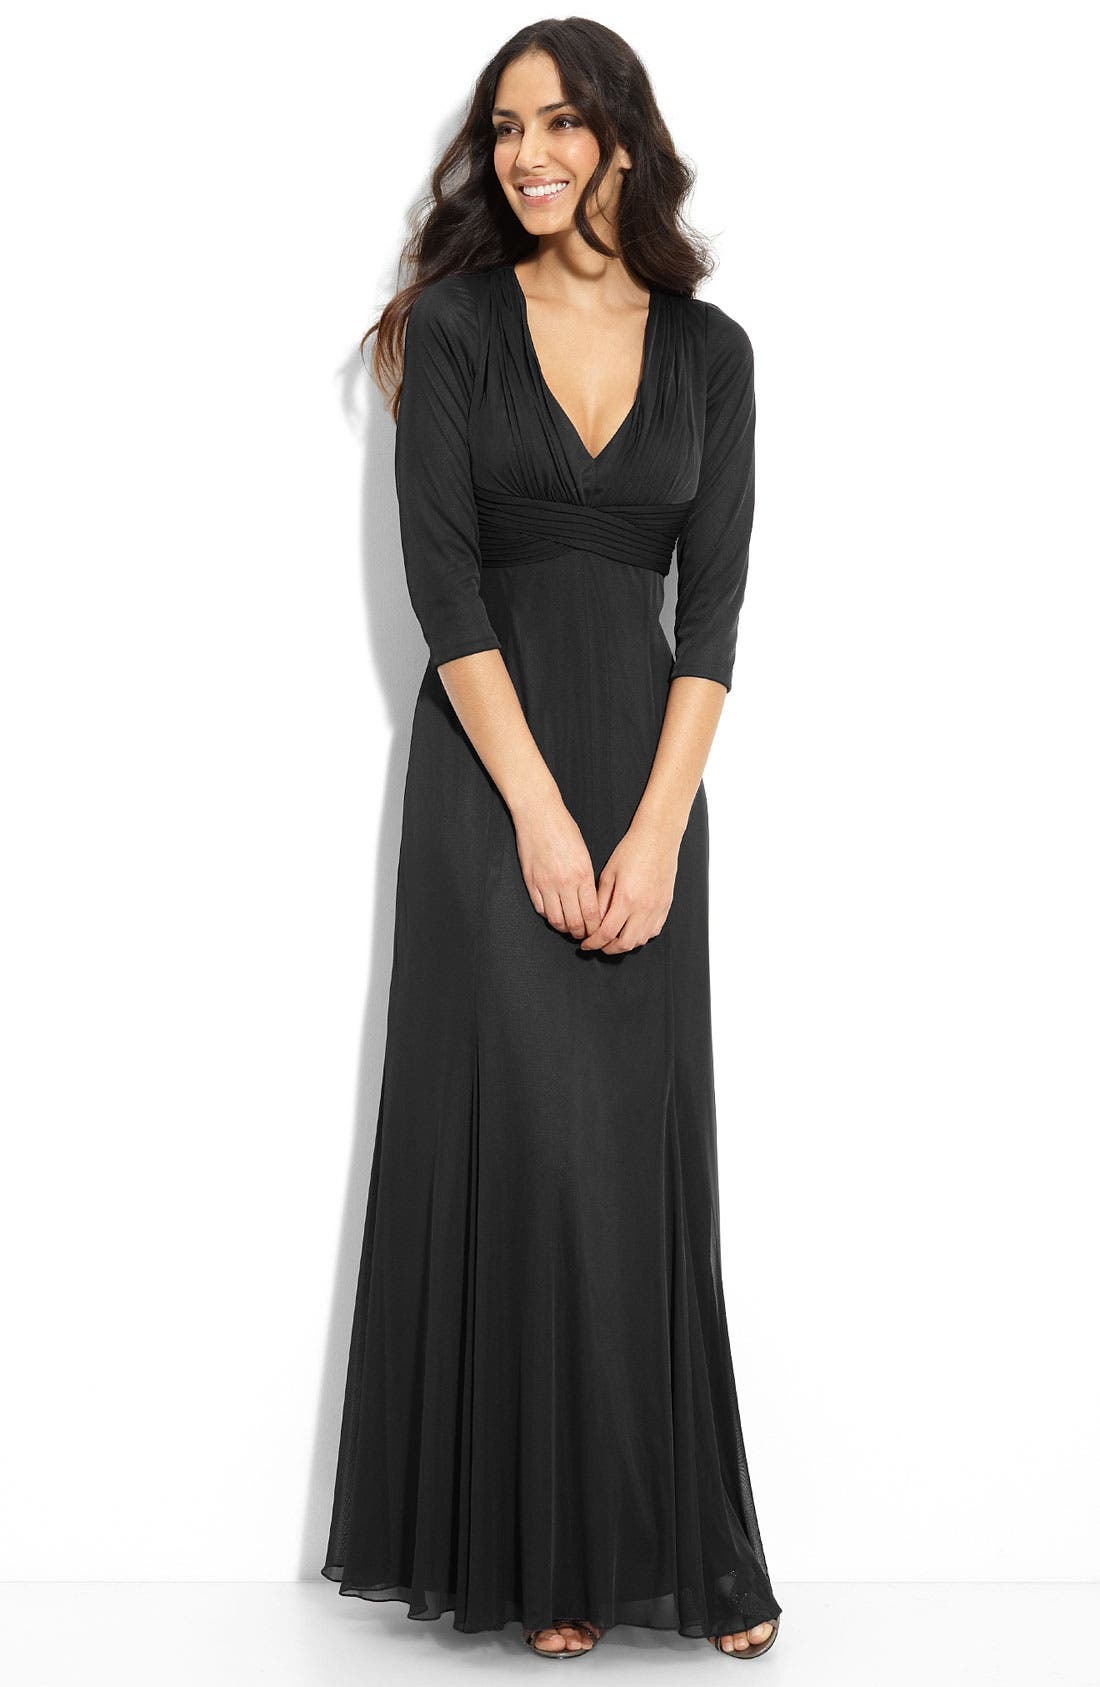 Alternate Image 1 Selected - Alex Evenings Crisscross Waist Mesh Gown (Petite)